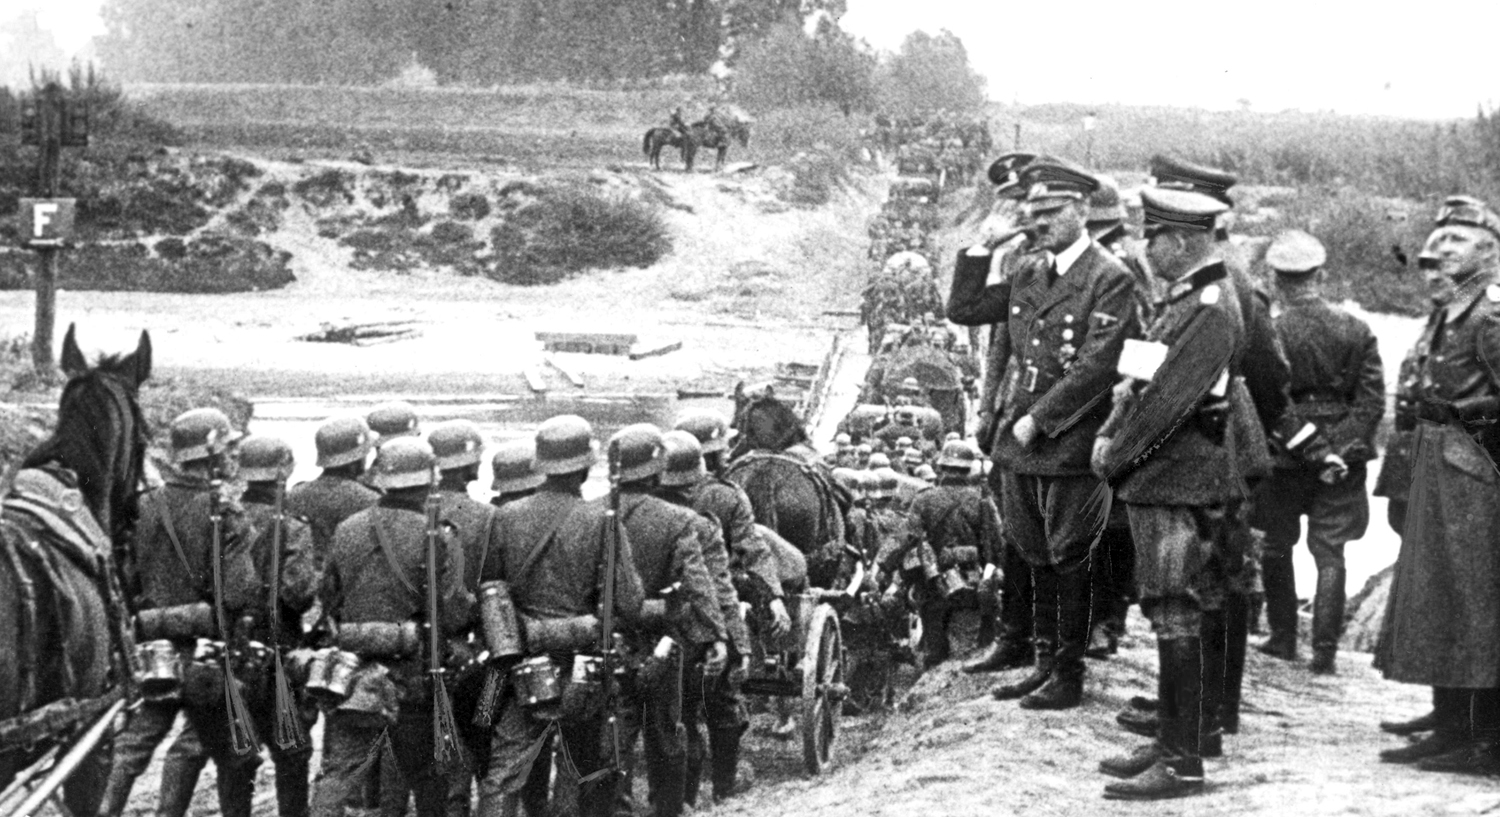 Adolf Hitler salutes his troops near Ubieszyn as they are crossing the Vistule river